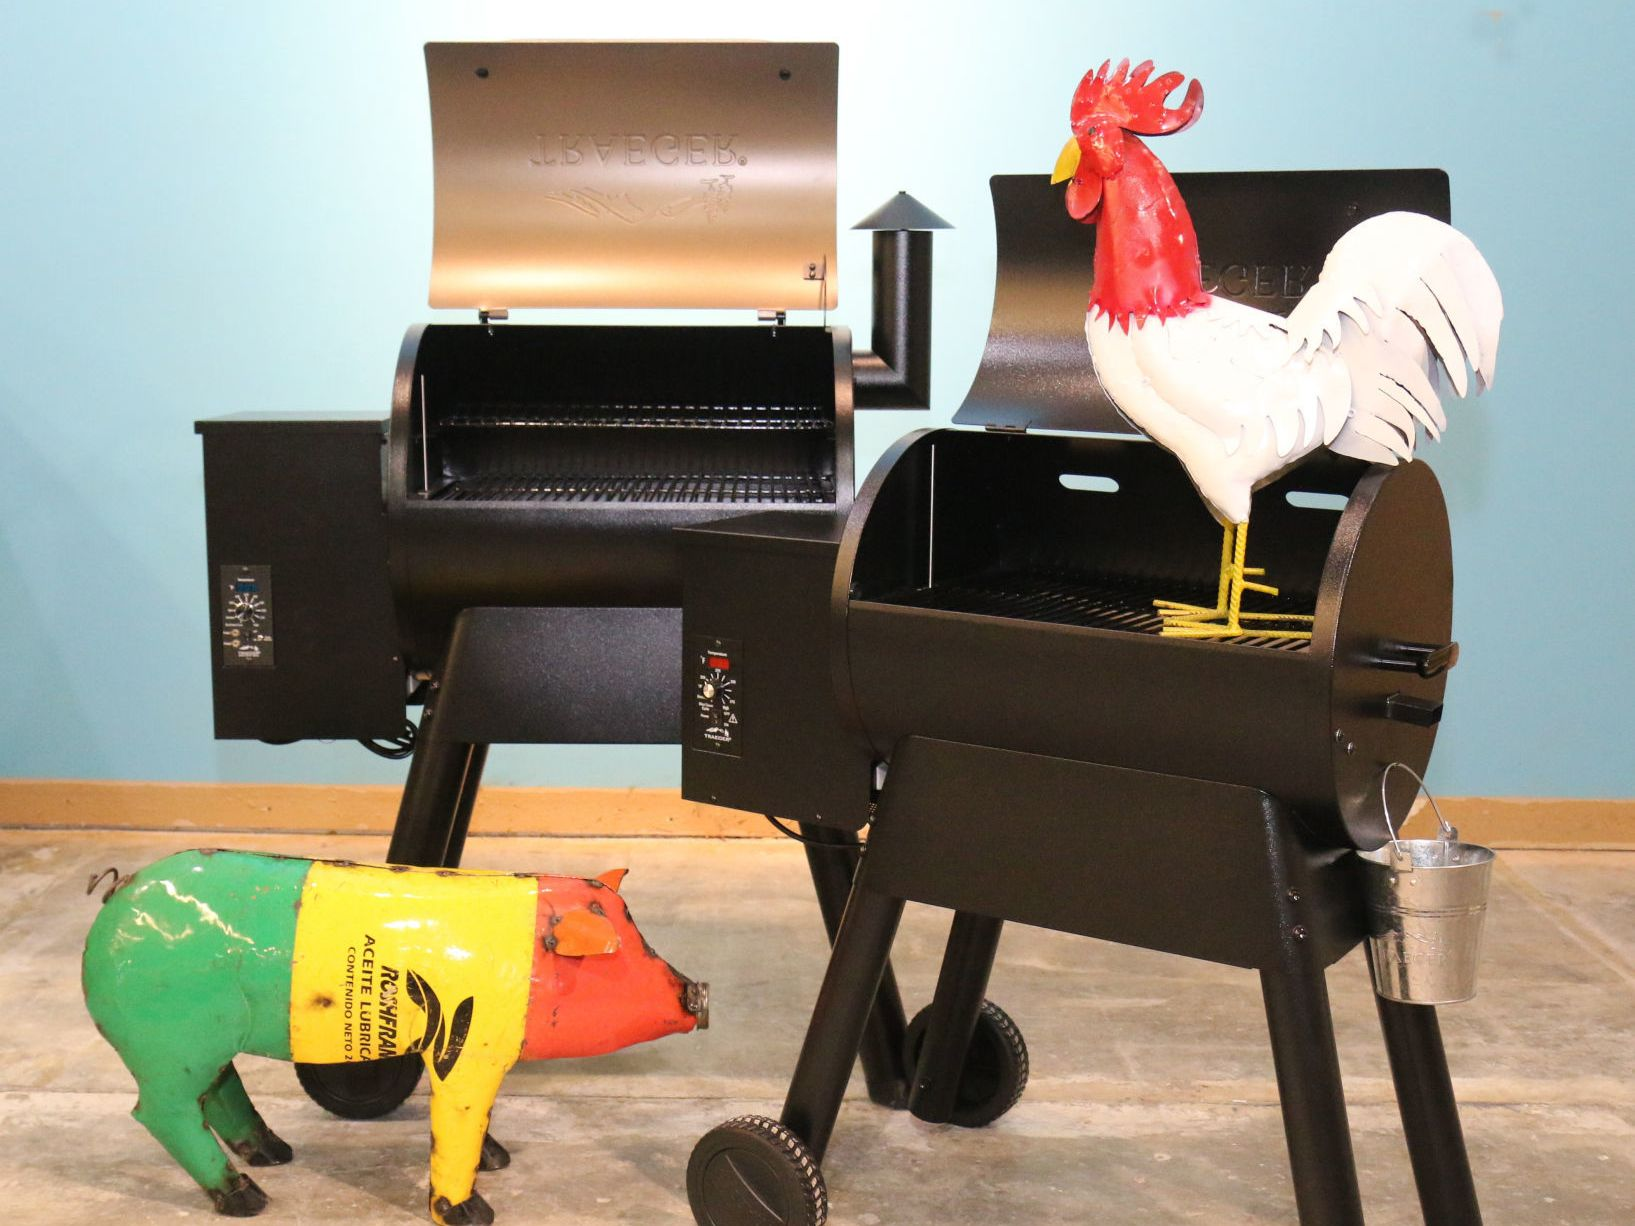 a seasonal pop up store with a grill or